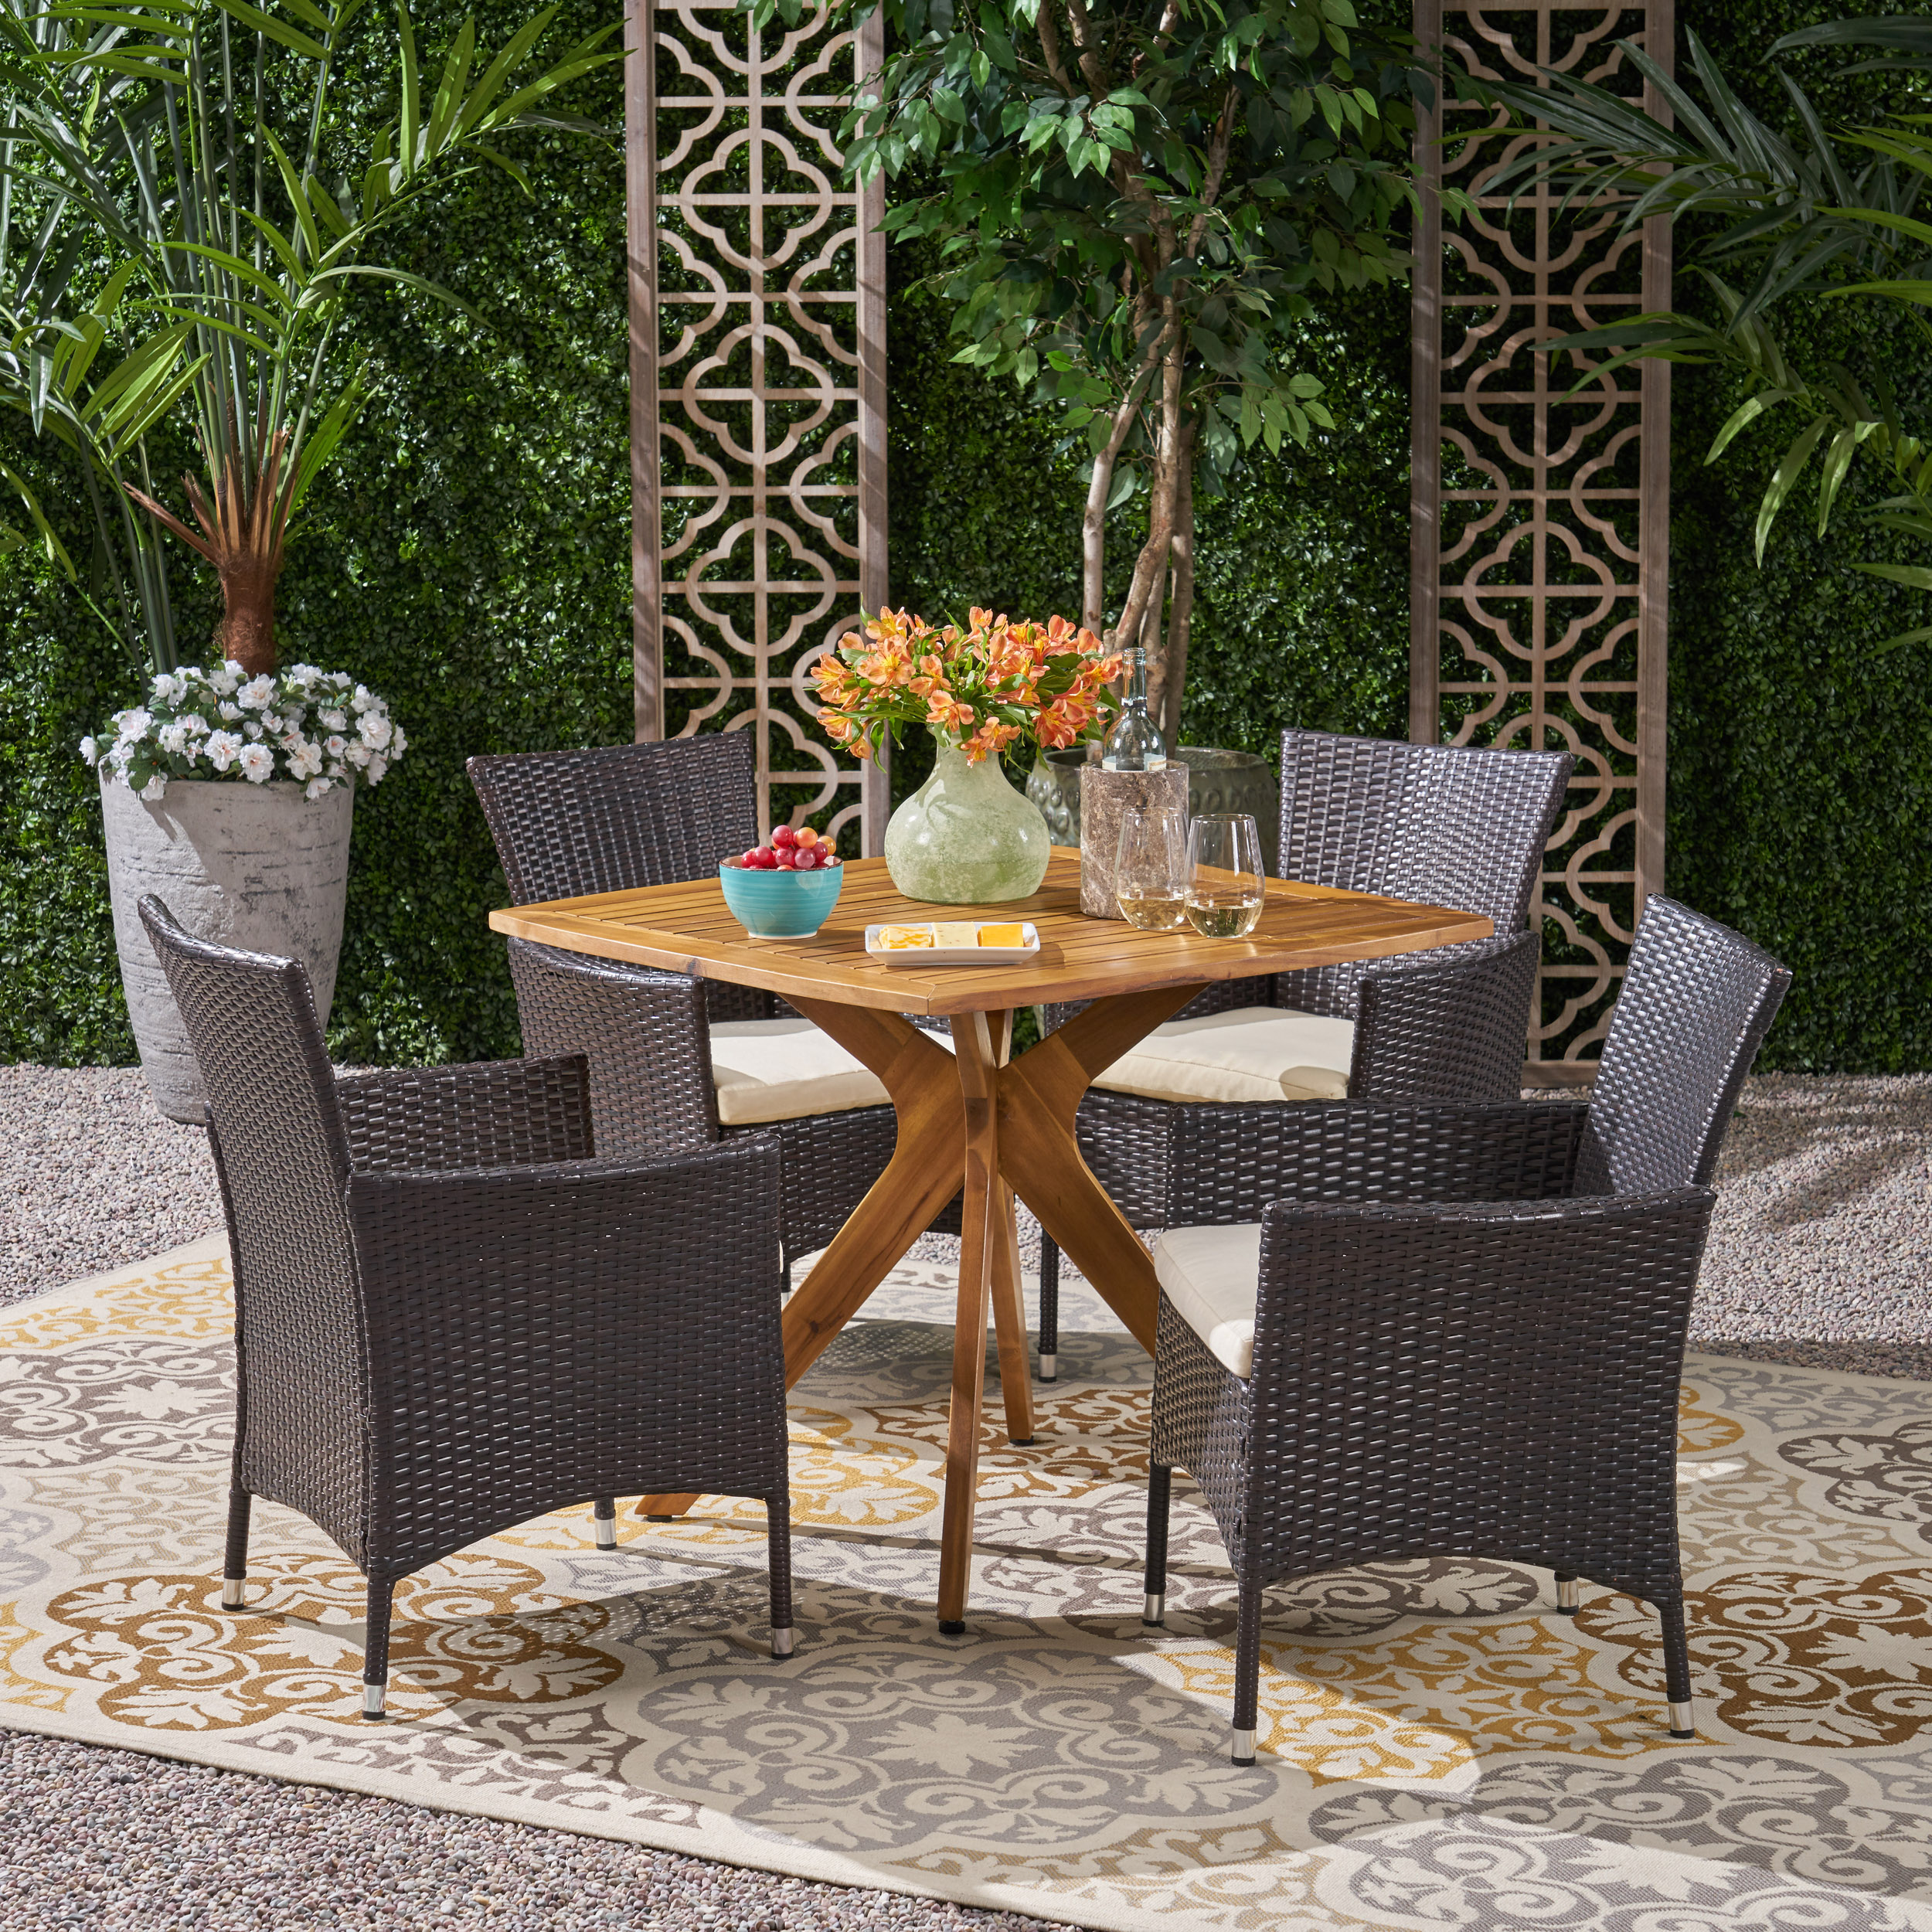 Dario Outdoor 5 Piece Wood and Wicker Dining Set, Teak, Multi Brown, Beige